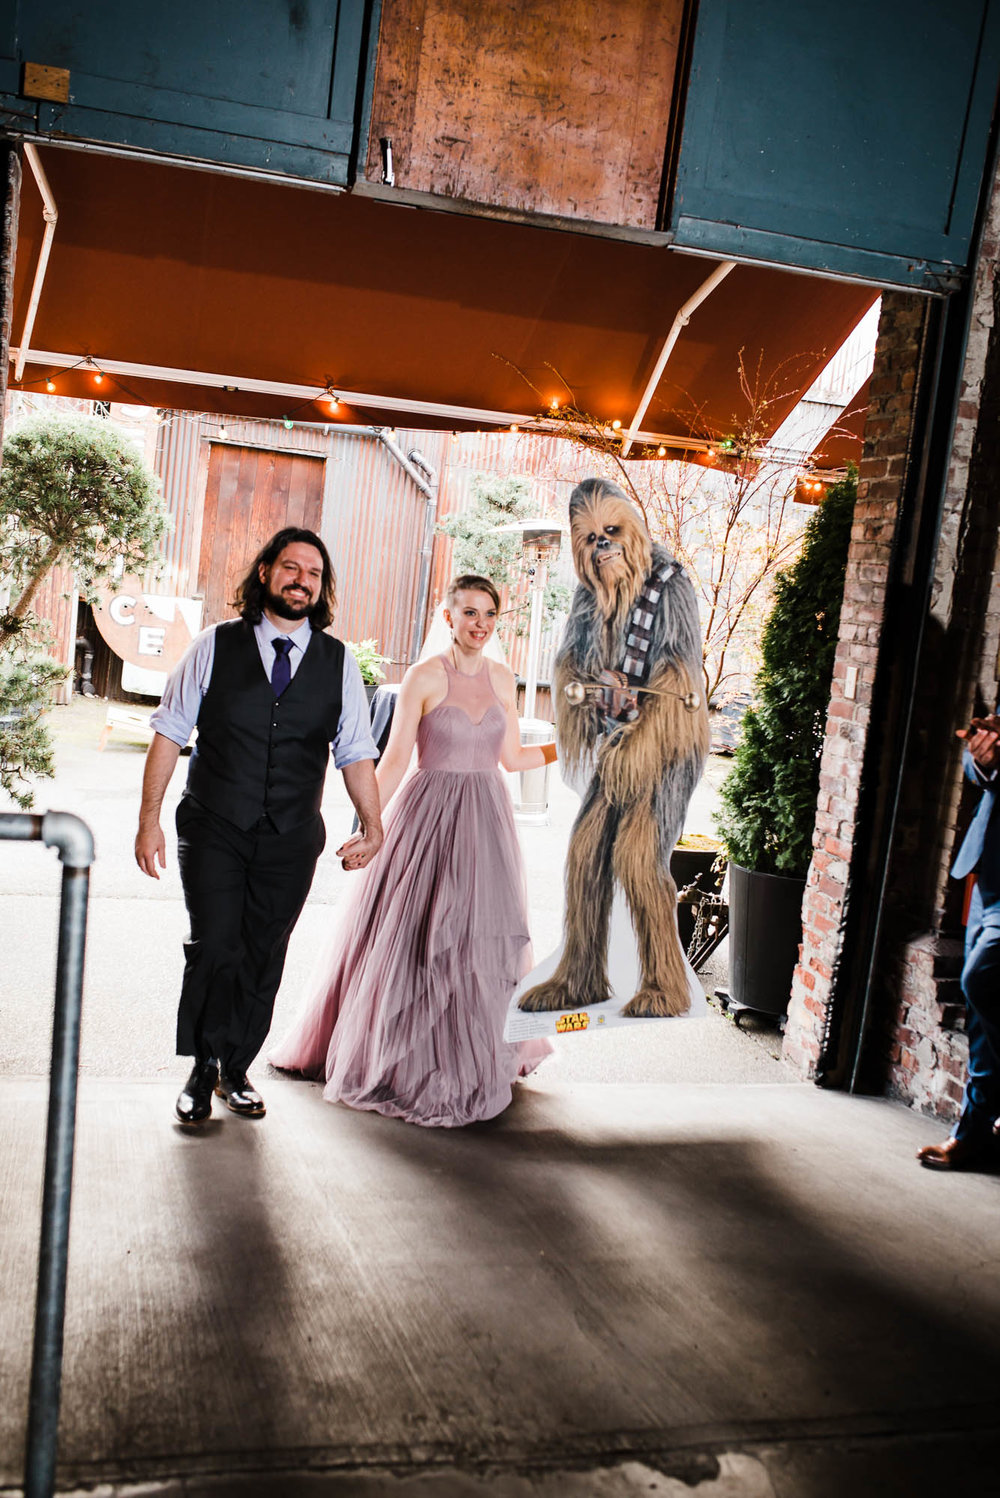 Georgetown Ballroom Wedding with board games, pop culture details and a purple wedding dress.  Grand entrance to wedding reception with chewbacca cardboard cut out